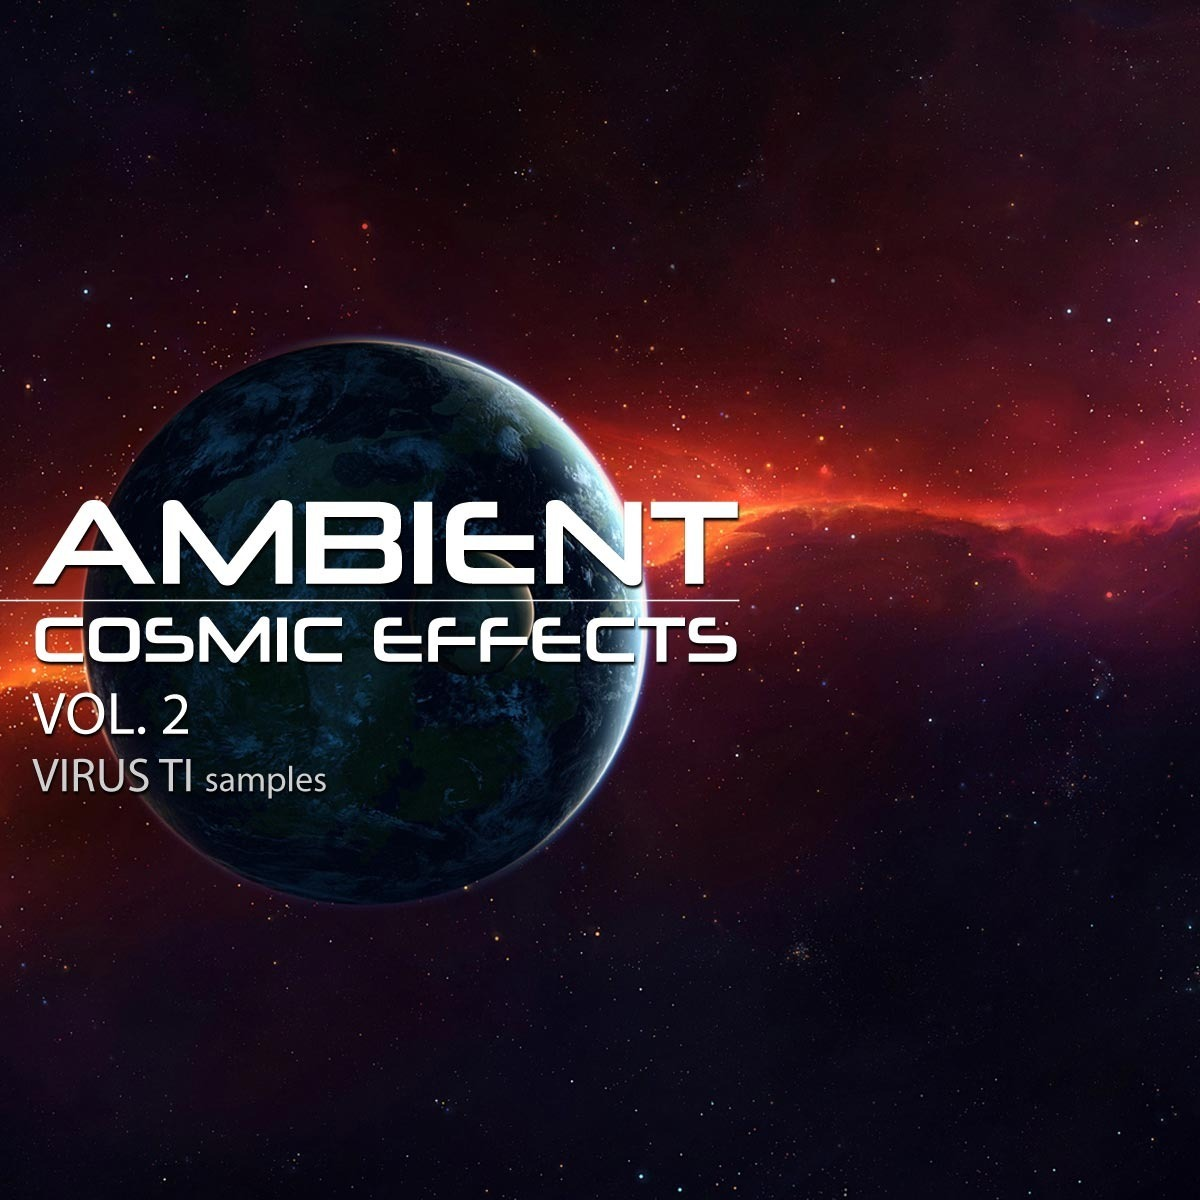 Ambient Cosmic Effects Vol 2